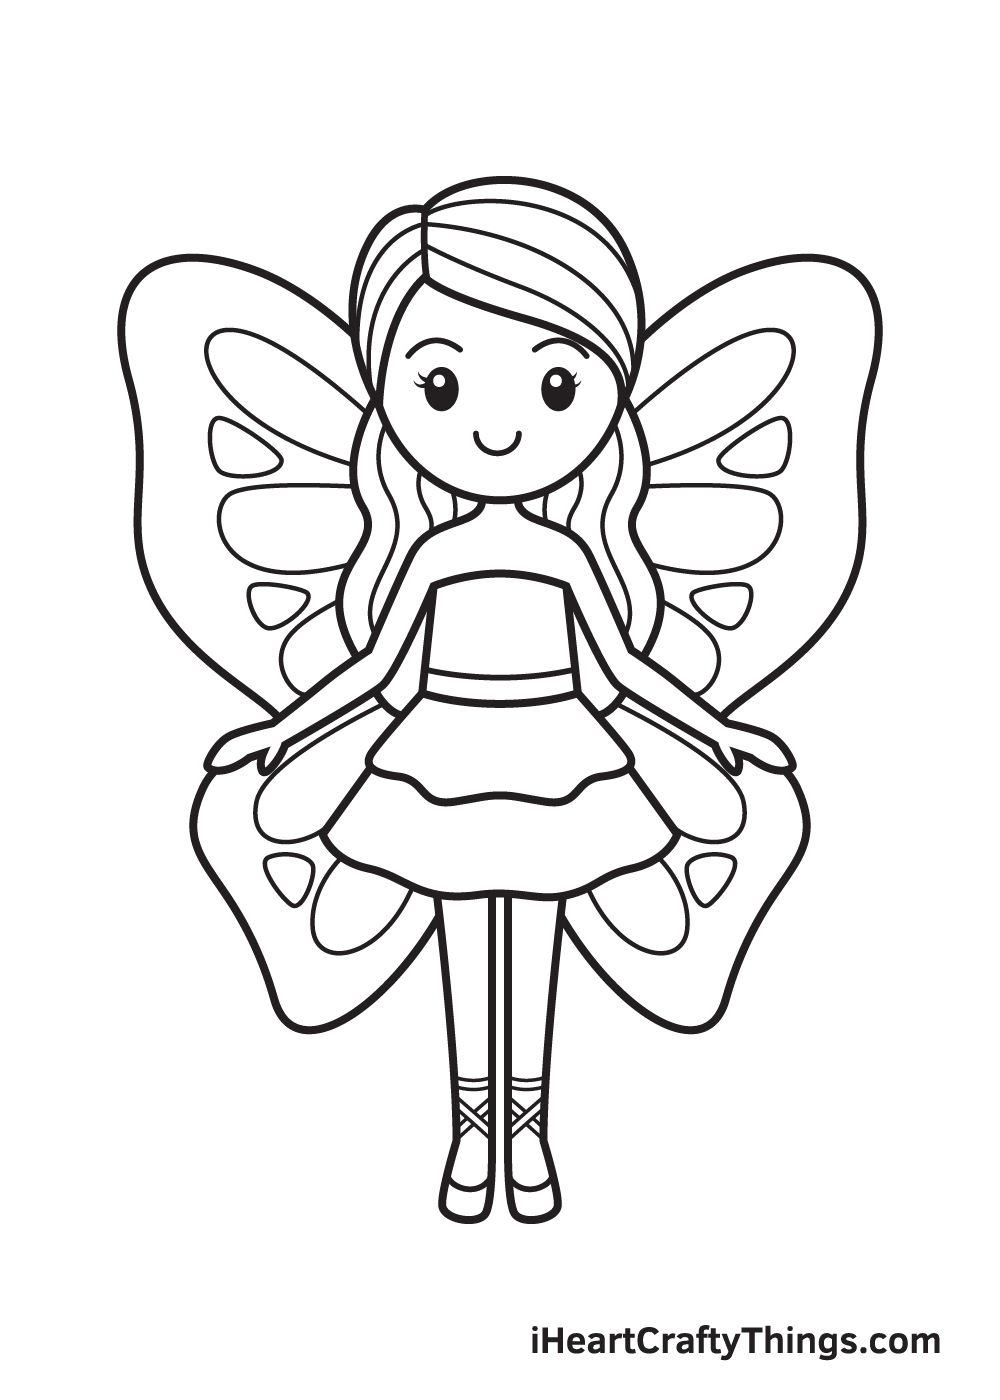 Fairy Drawing – Step 9